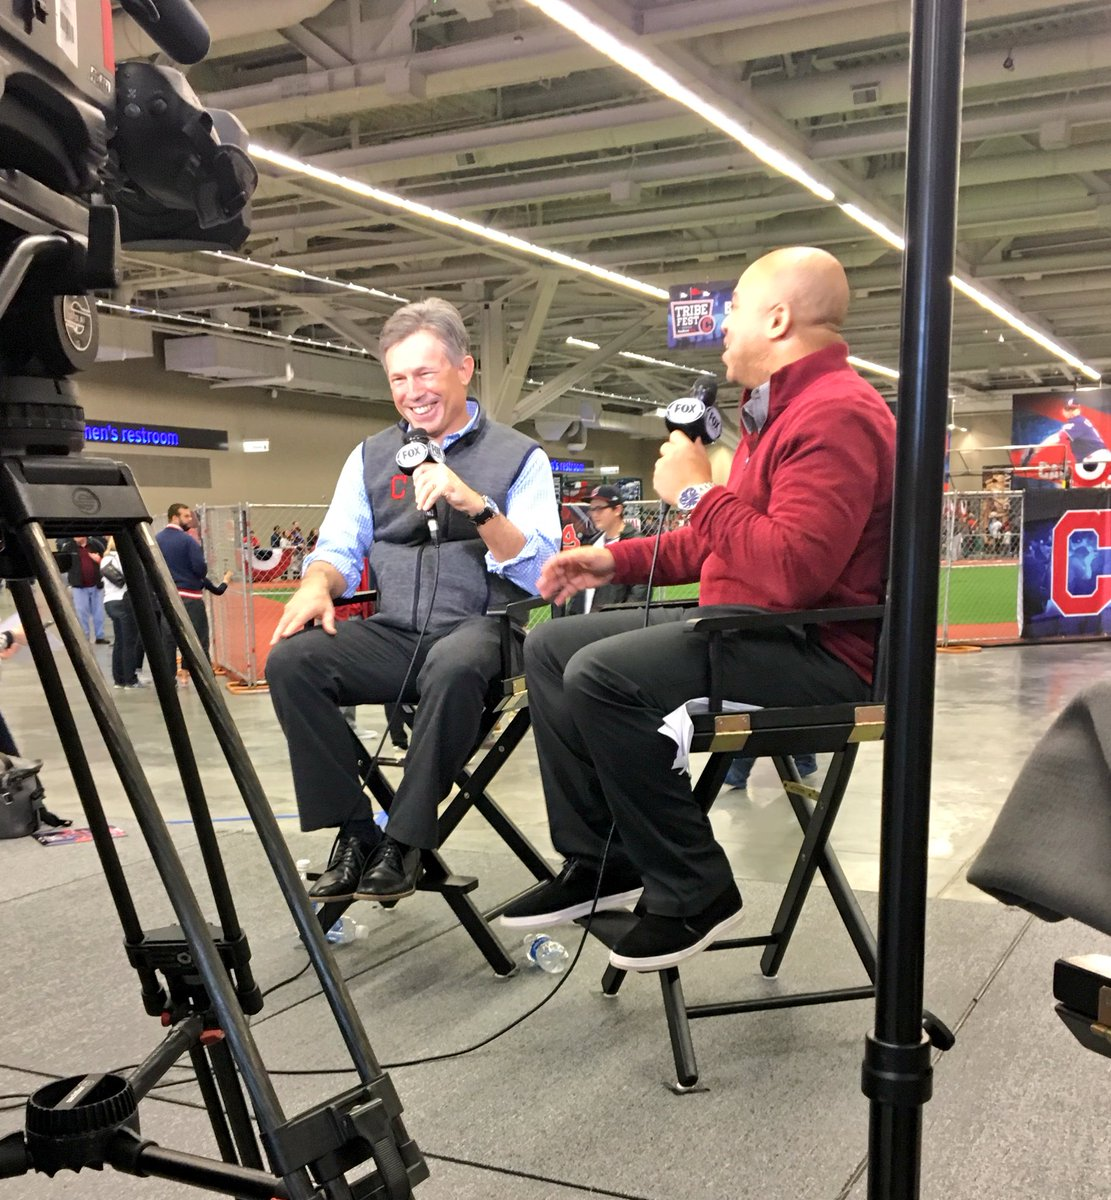 .@DreKnott and Indians owner Paul Dolan chatting on @FOXSportsOH. #TribeFest https://t.co/FftIesXxjk